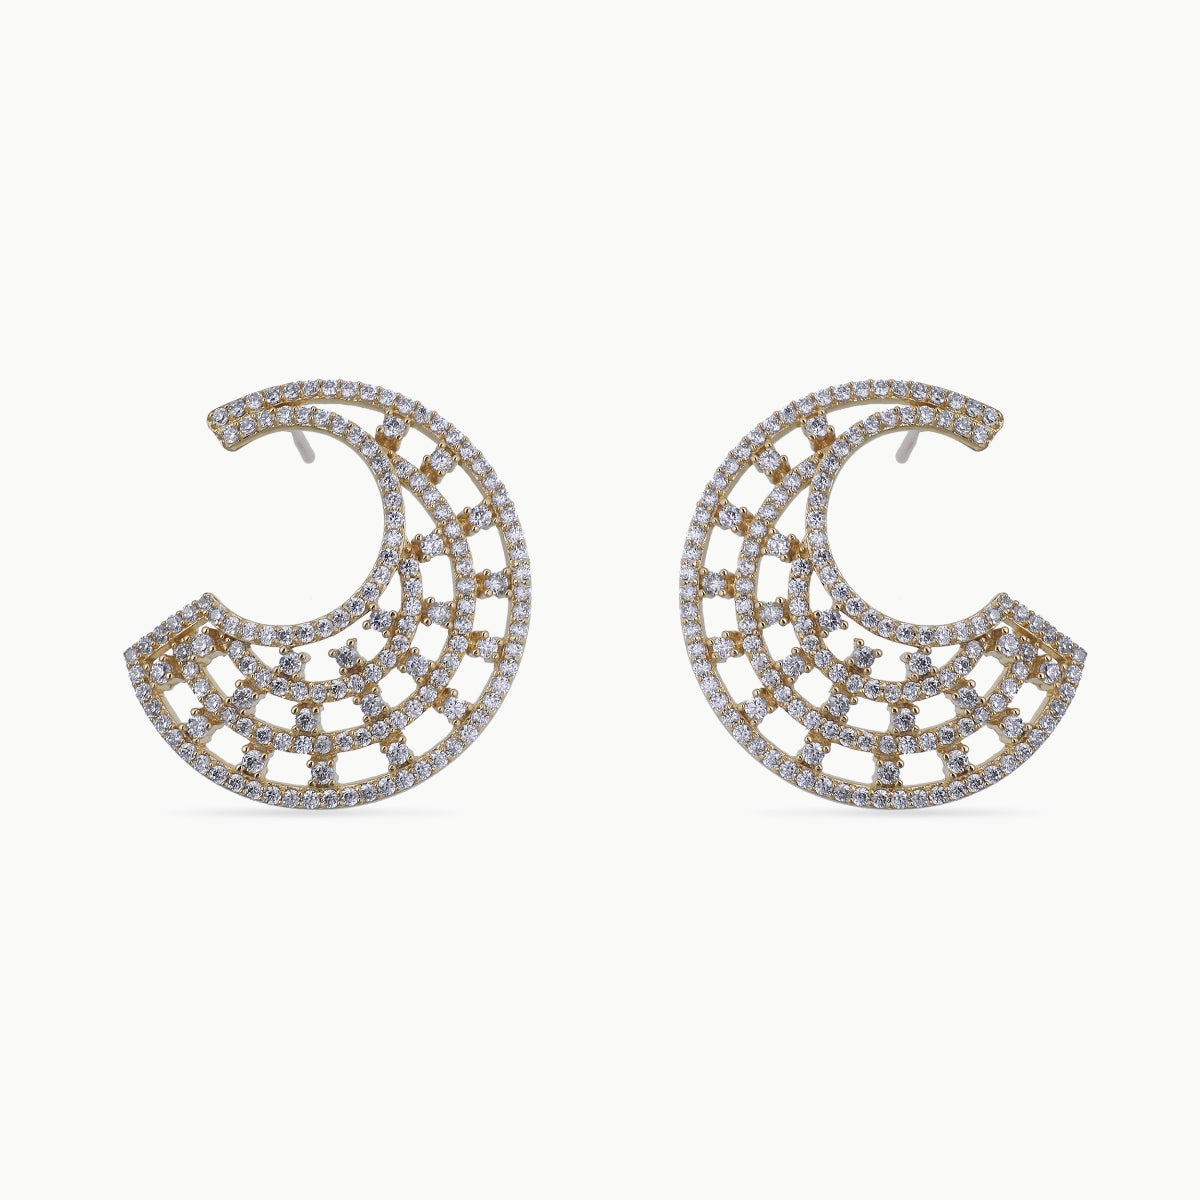 Loona Nakshatra CZ Earrings